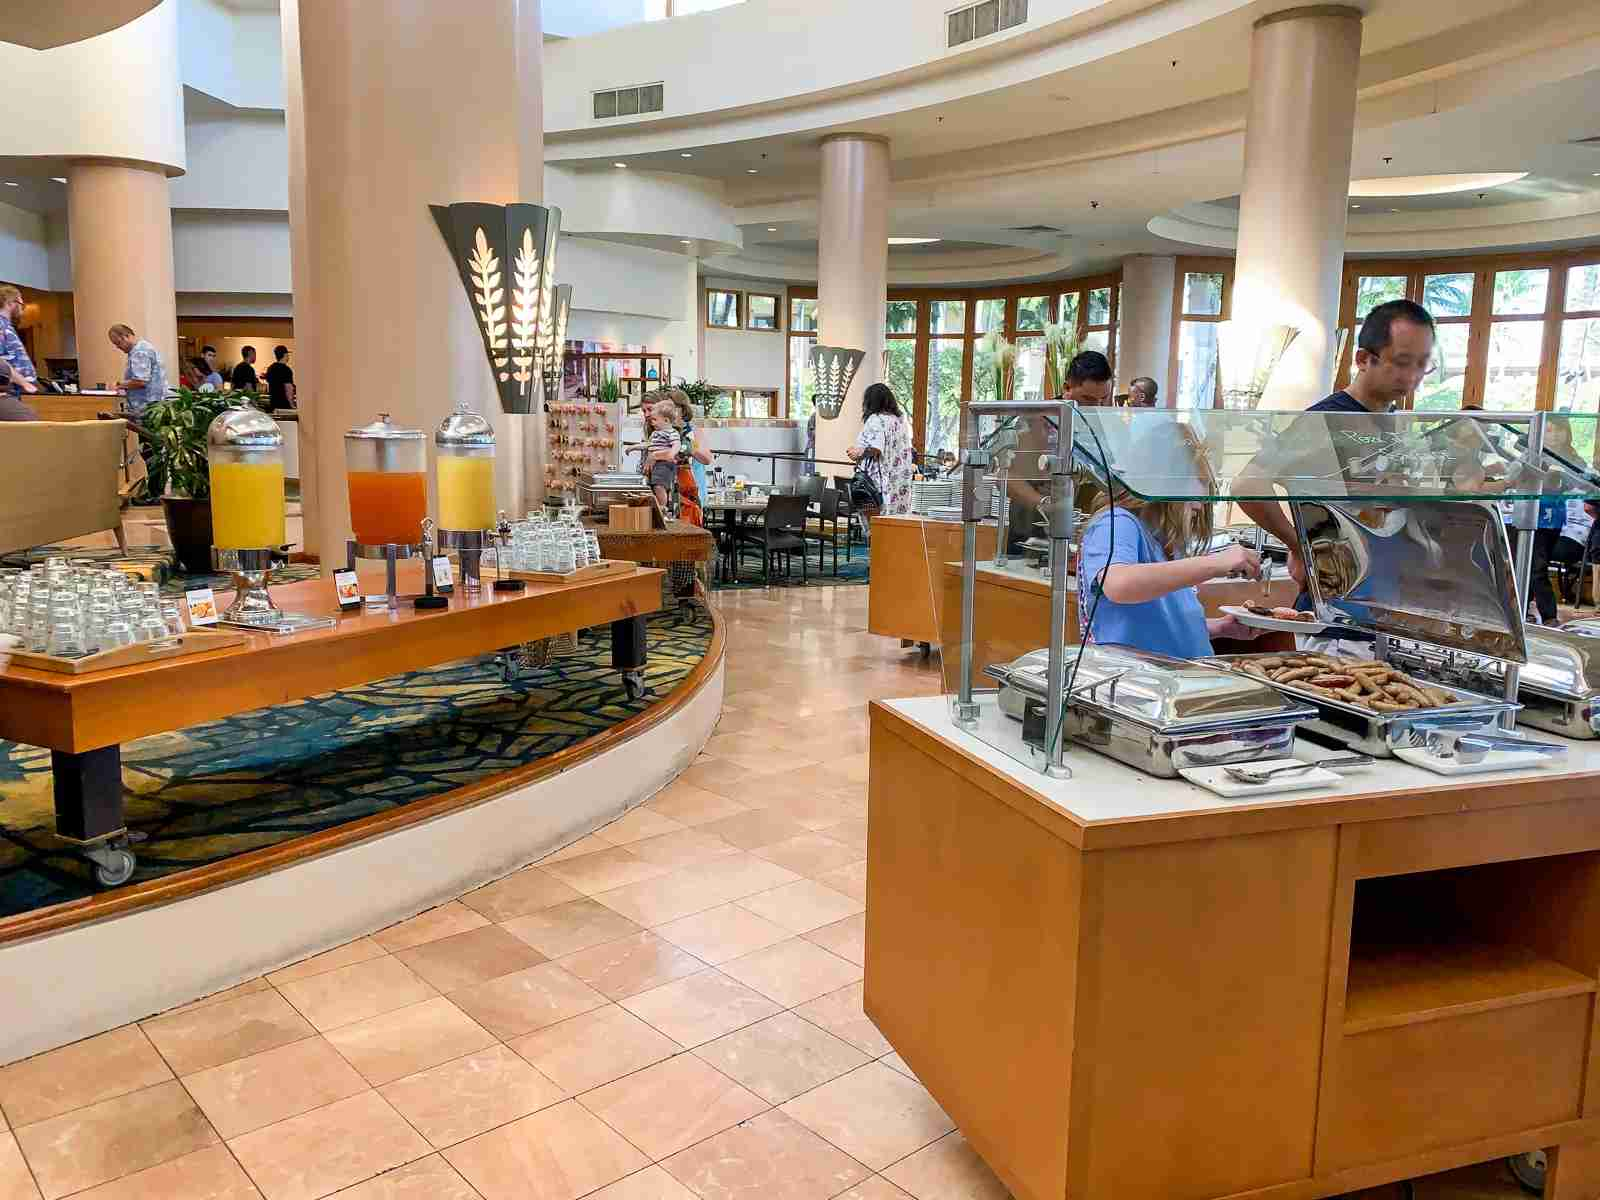 Hilton Waikoloa breakfast (Photo by Summer Hull / The Points Guy)